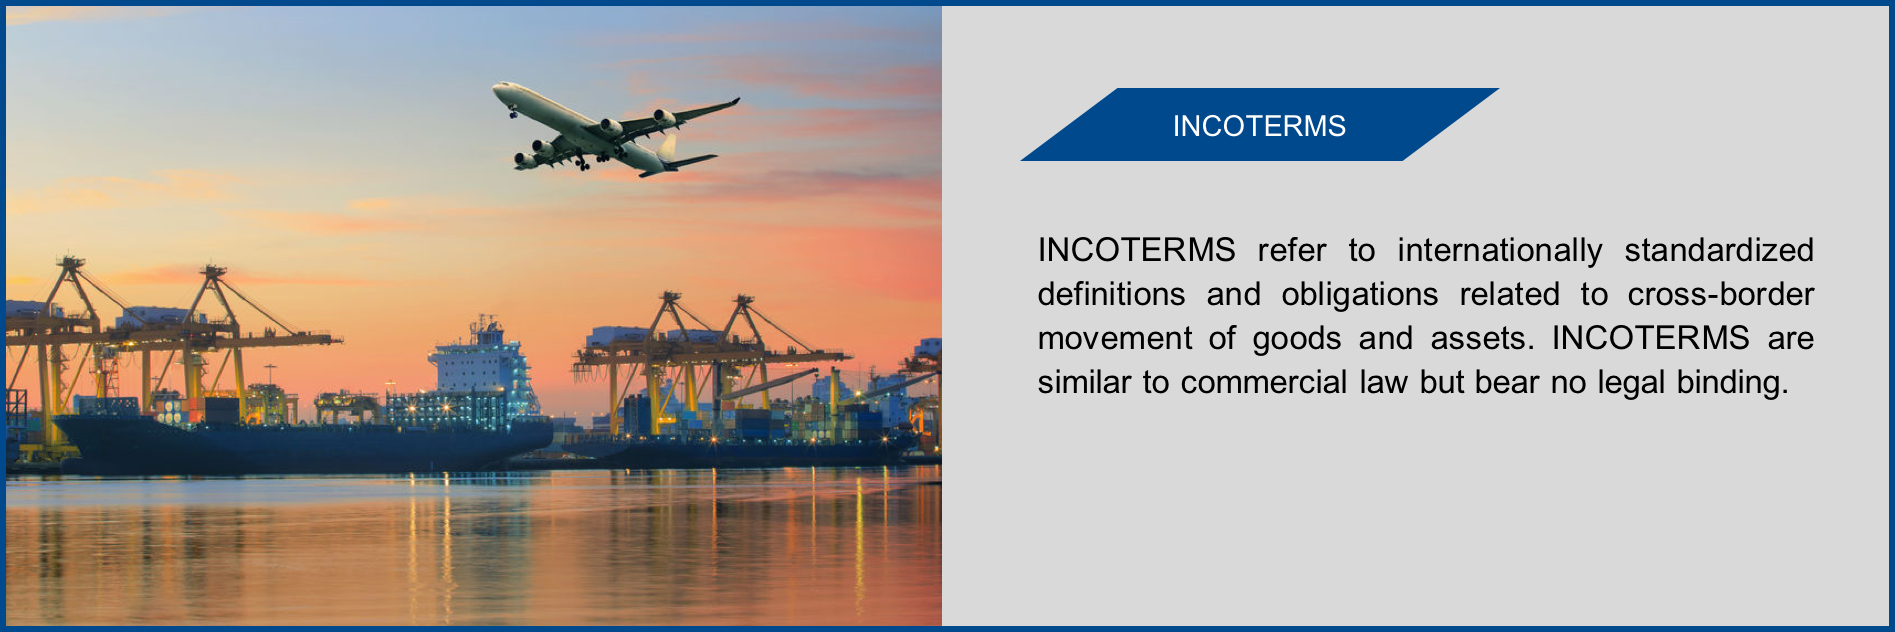 INCOTERMS are similar to commercial law but bear no legal binding.